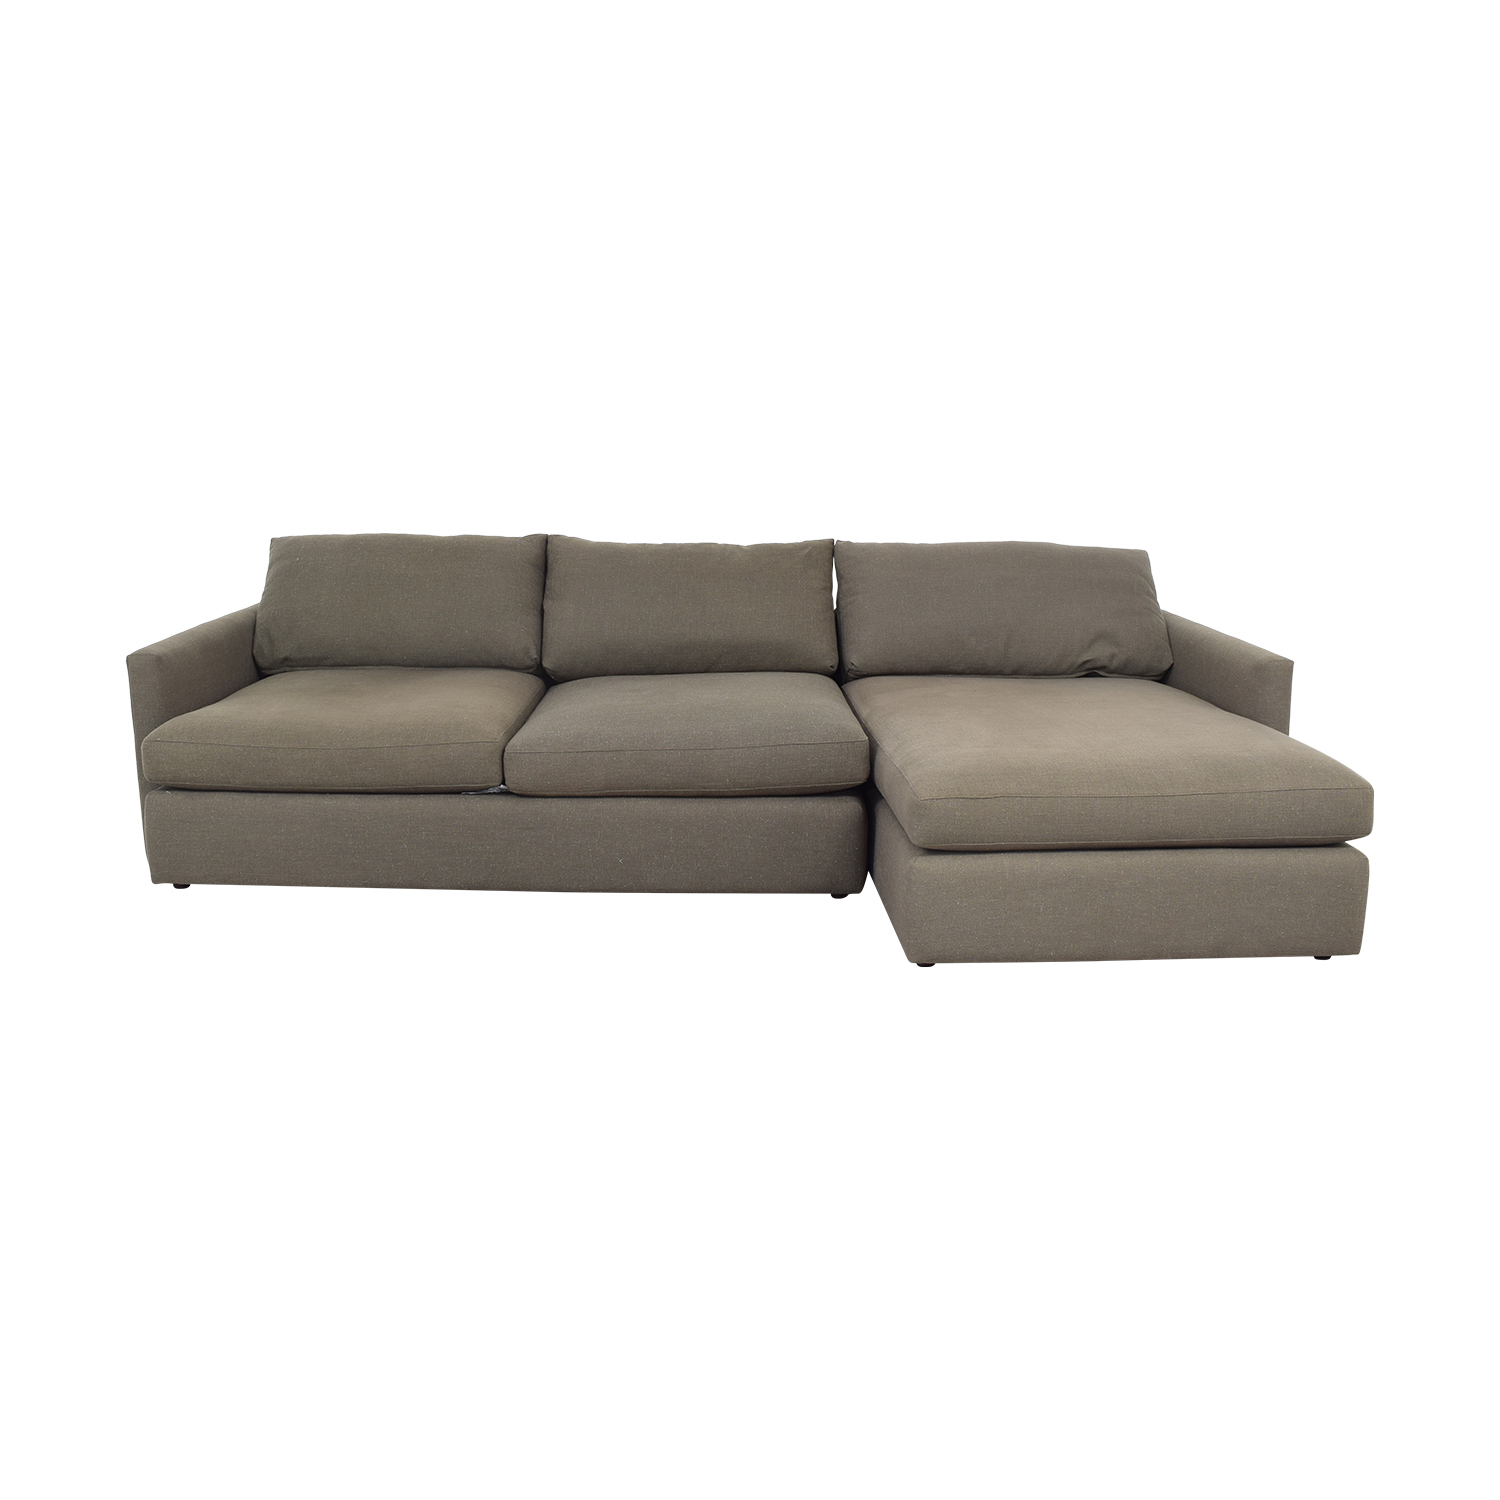 Crate & Barrel Crate & Barrel Two Piece Chaise Sectional Sofa